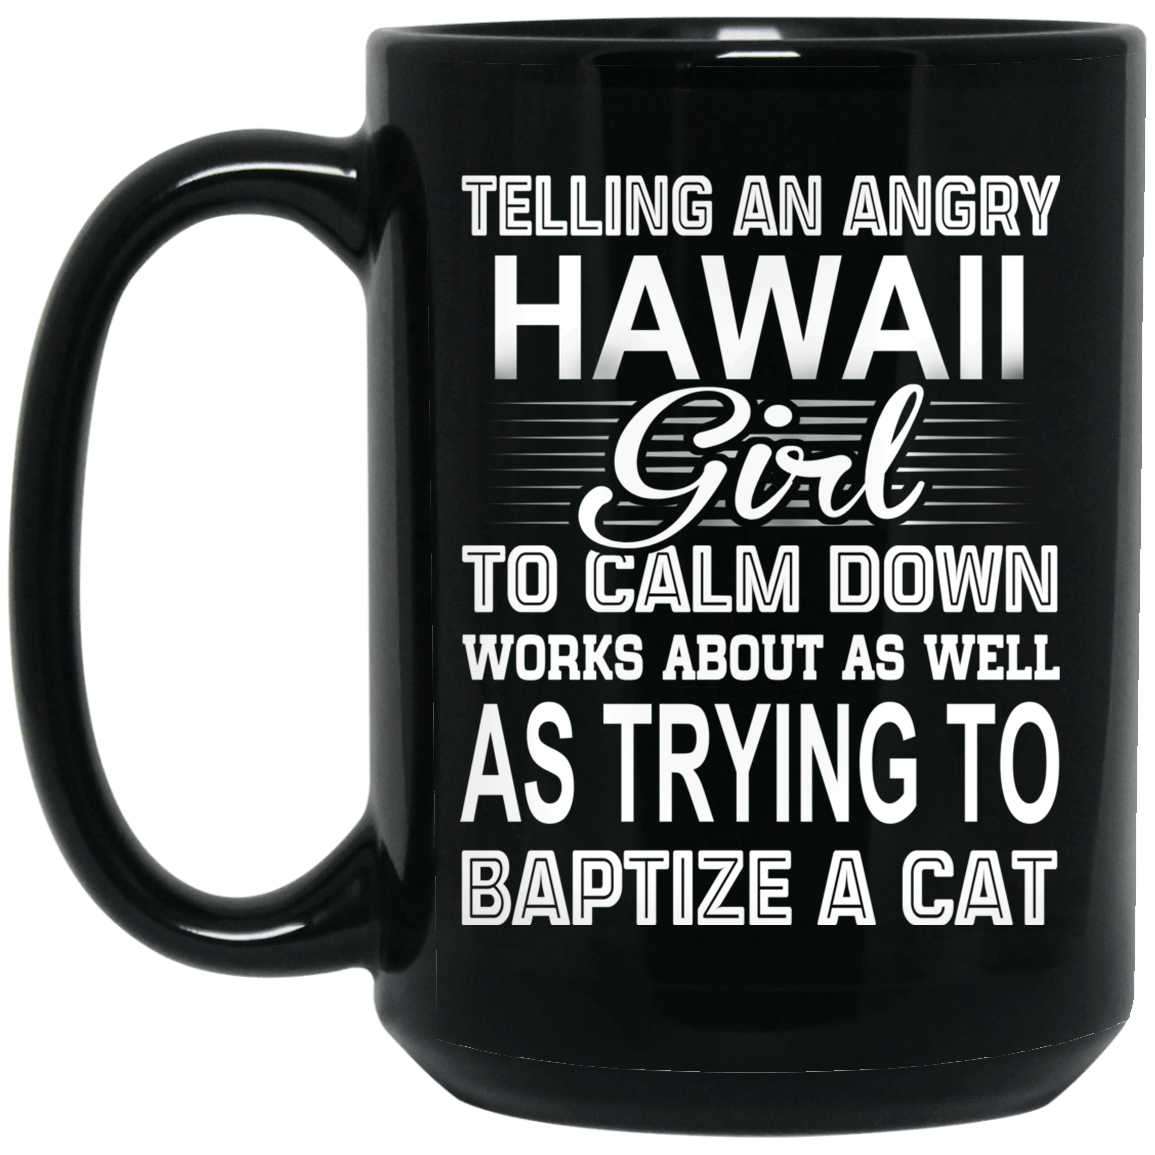 Telling An Angry Hawaii Girl To Calm Down Works About As Well As Trying To Baptize A Cat Mug 1066-10182-76151650-49311 - Tee Ript